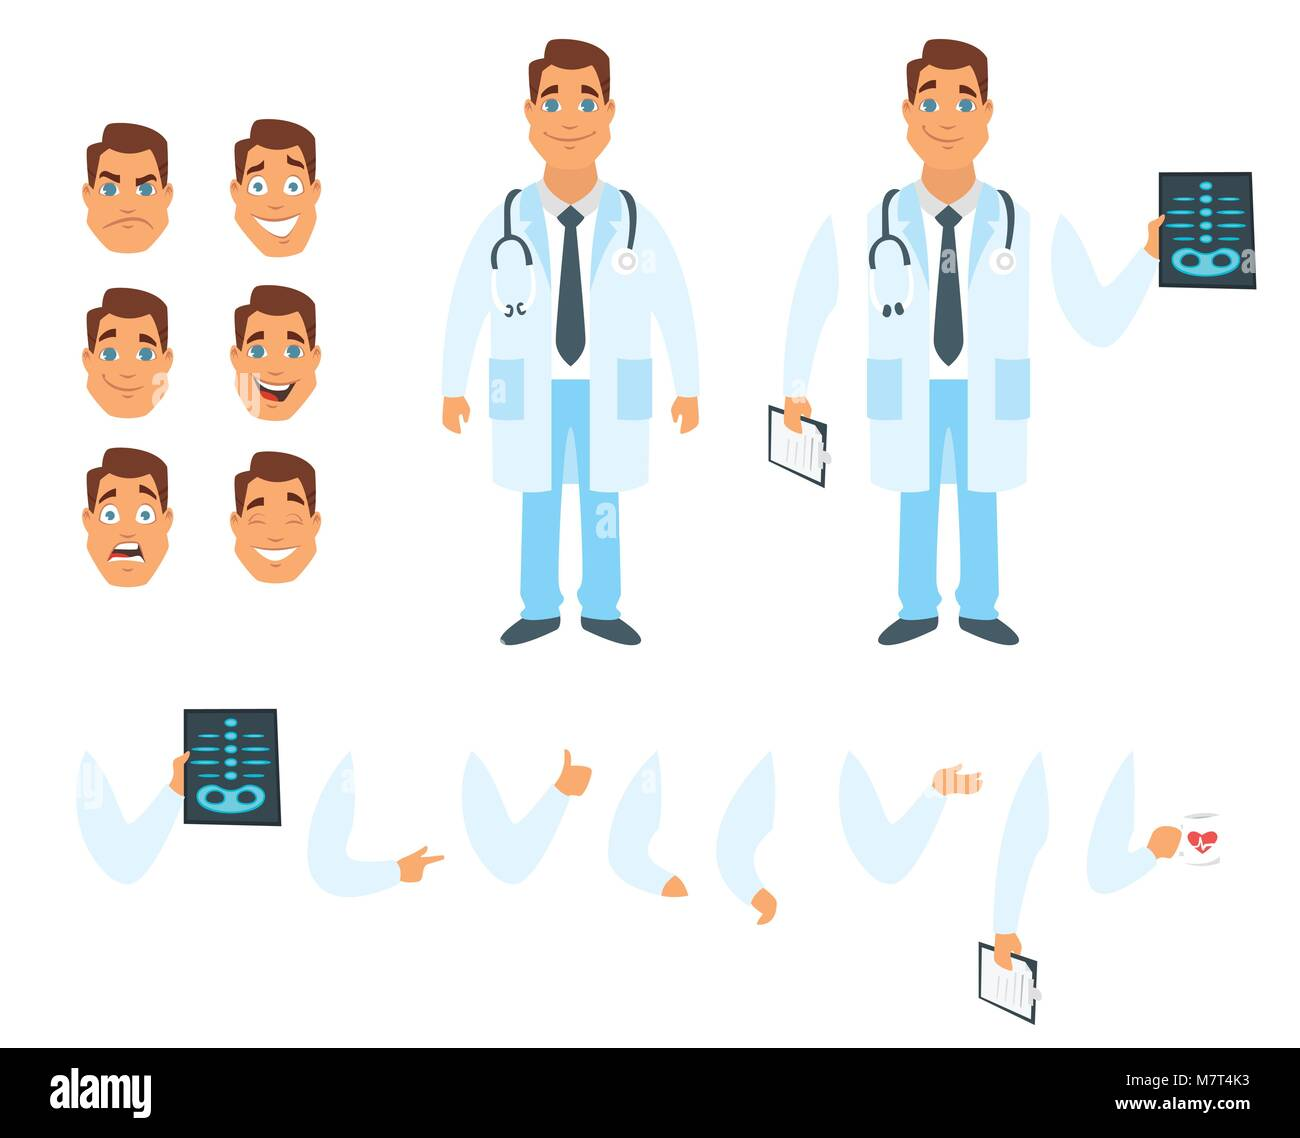 Vector cartoon style man doctor character generator  Different Stock